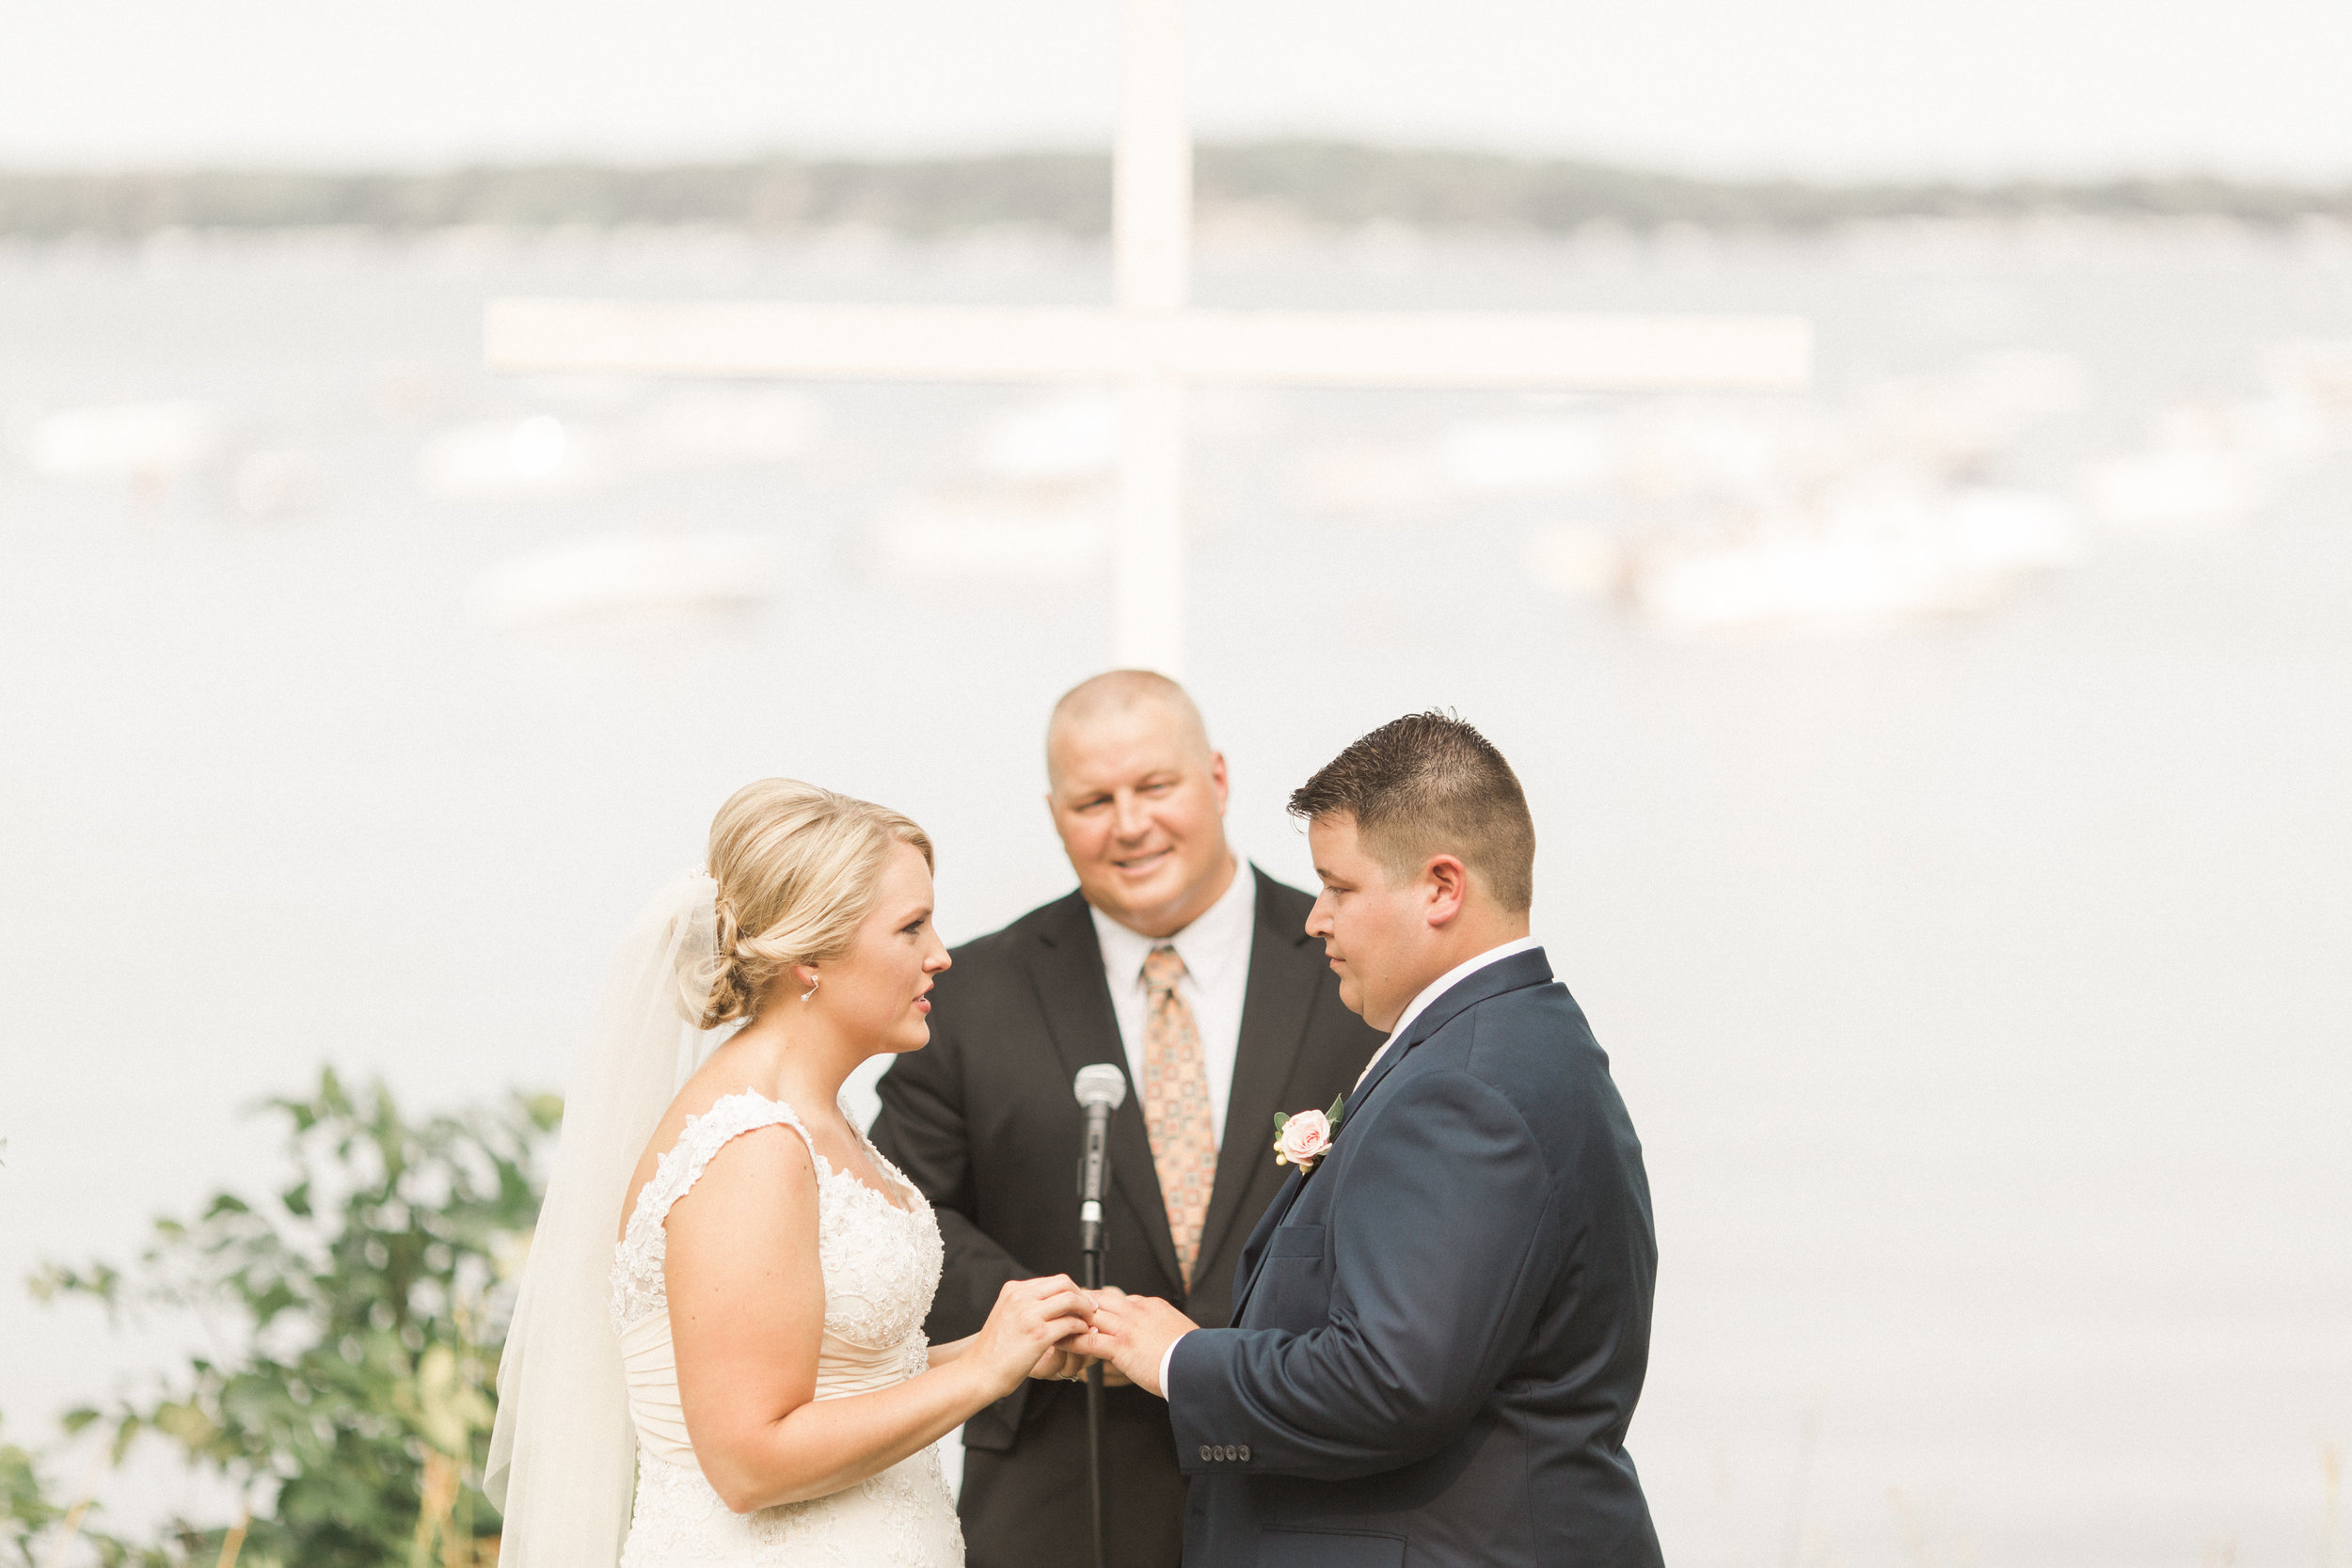 outdoor-iowa-wedding-ceremony-vows-with-a-lake-view-okoboji-iowa